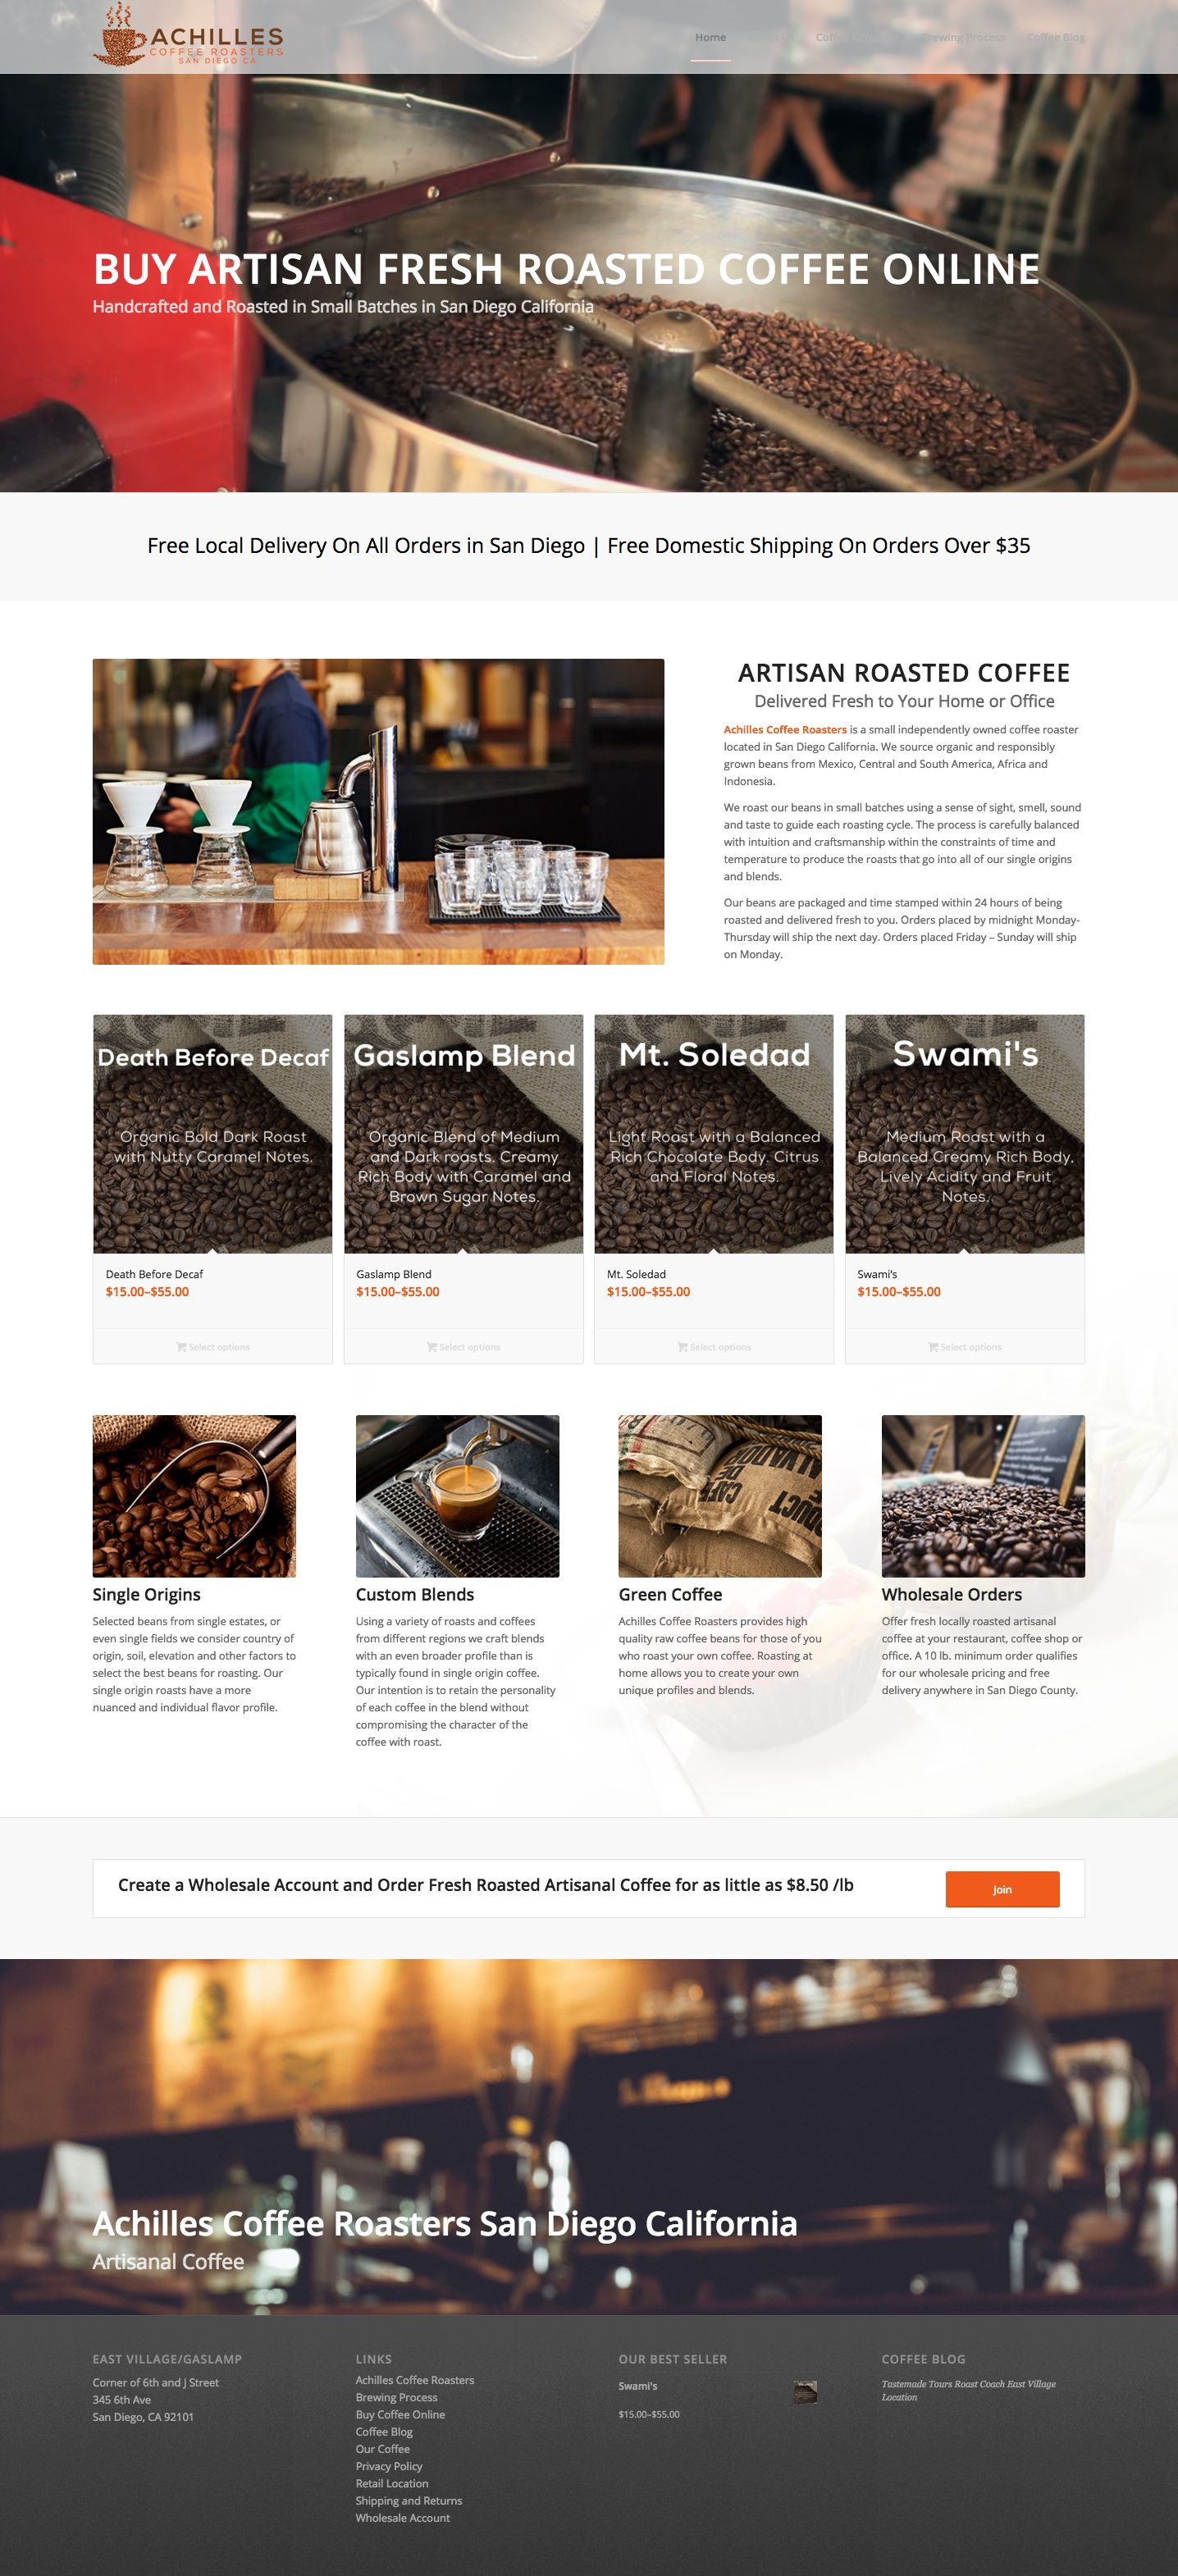 eCommerce-WordPress-Website-Design-Company-San-Francisco-Achilles-Coffee-Roasters-1